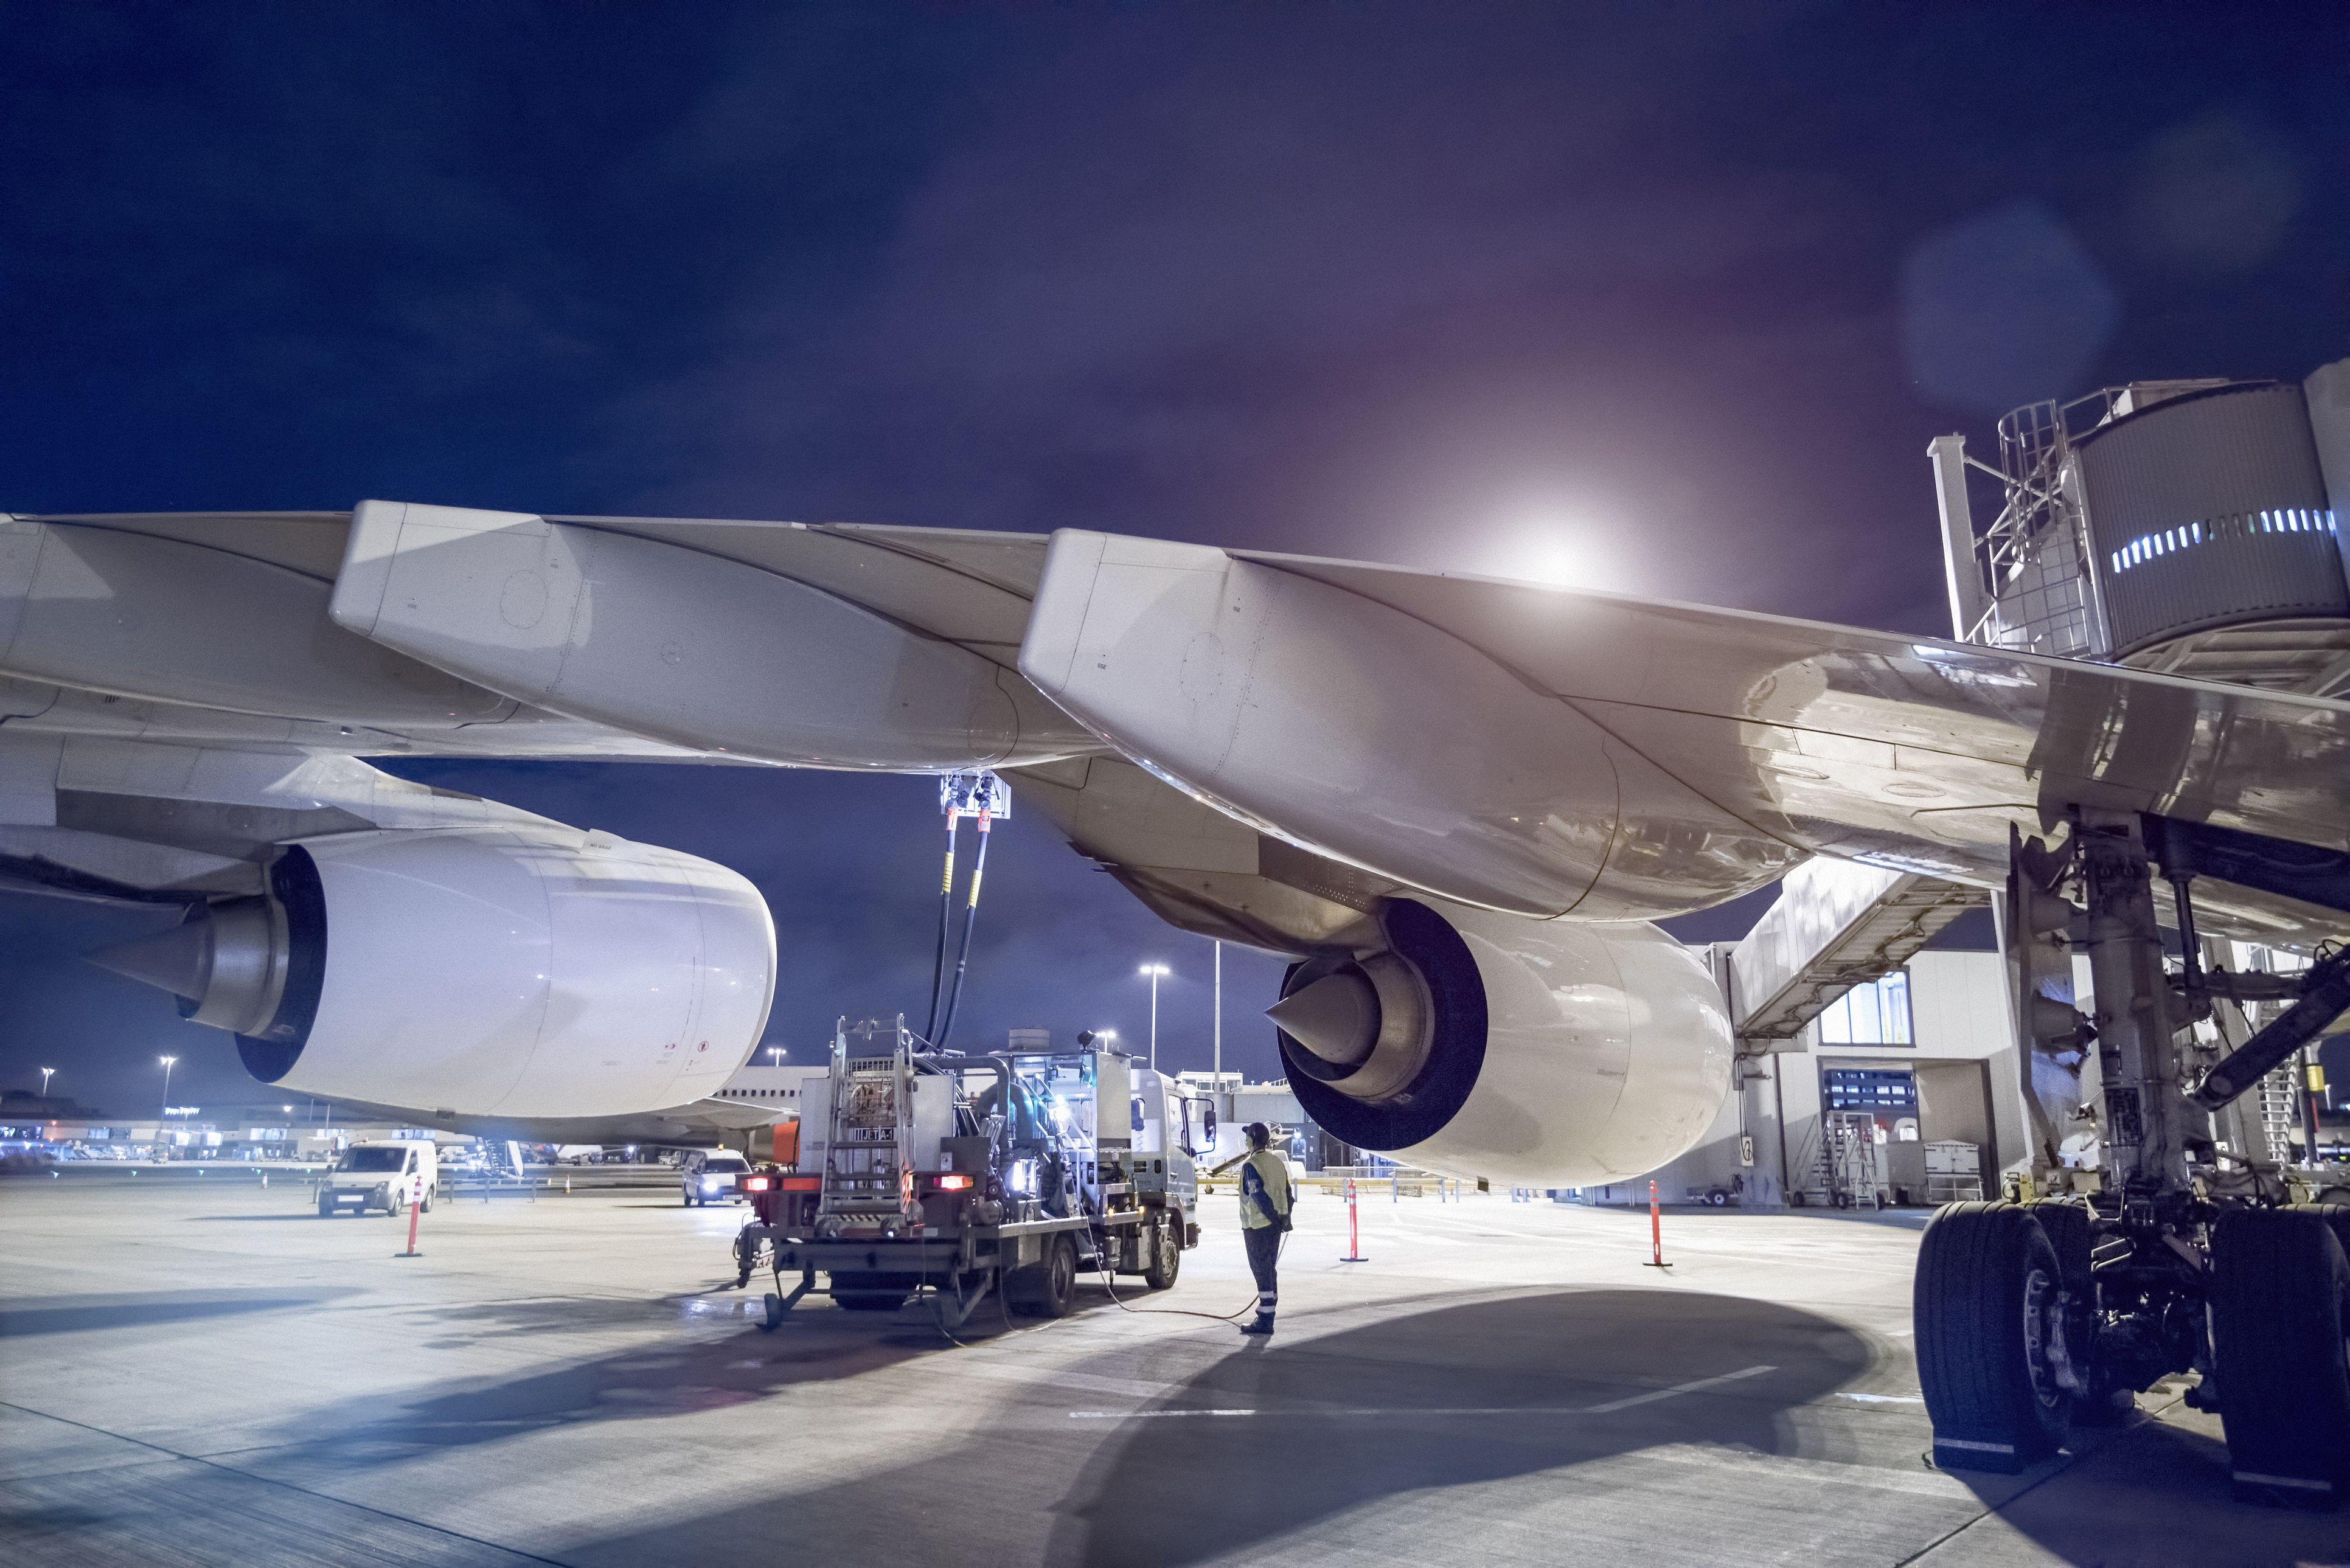 Ground crew refuelling A380 aircraft at airport